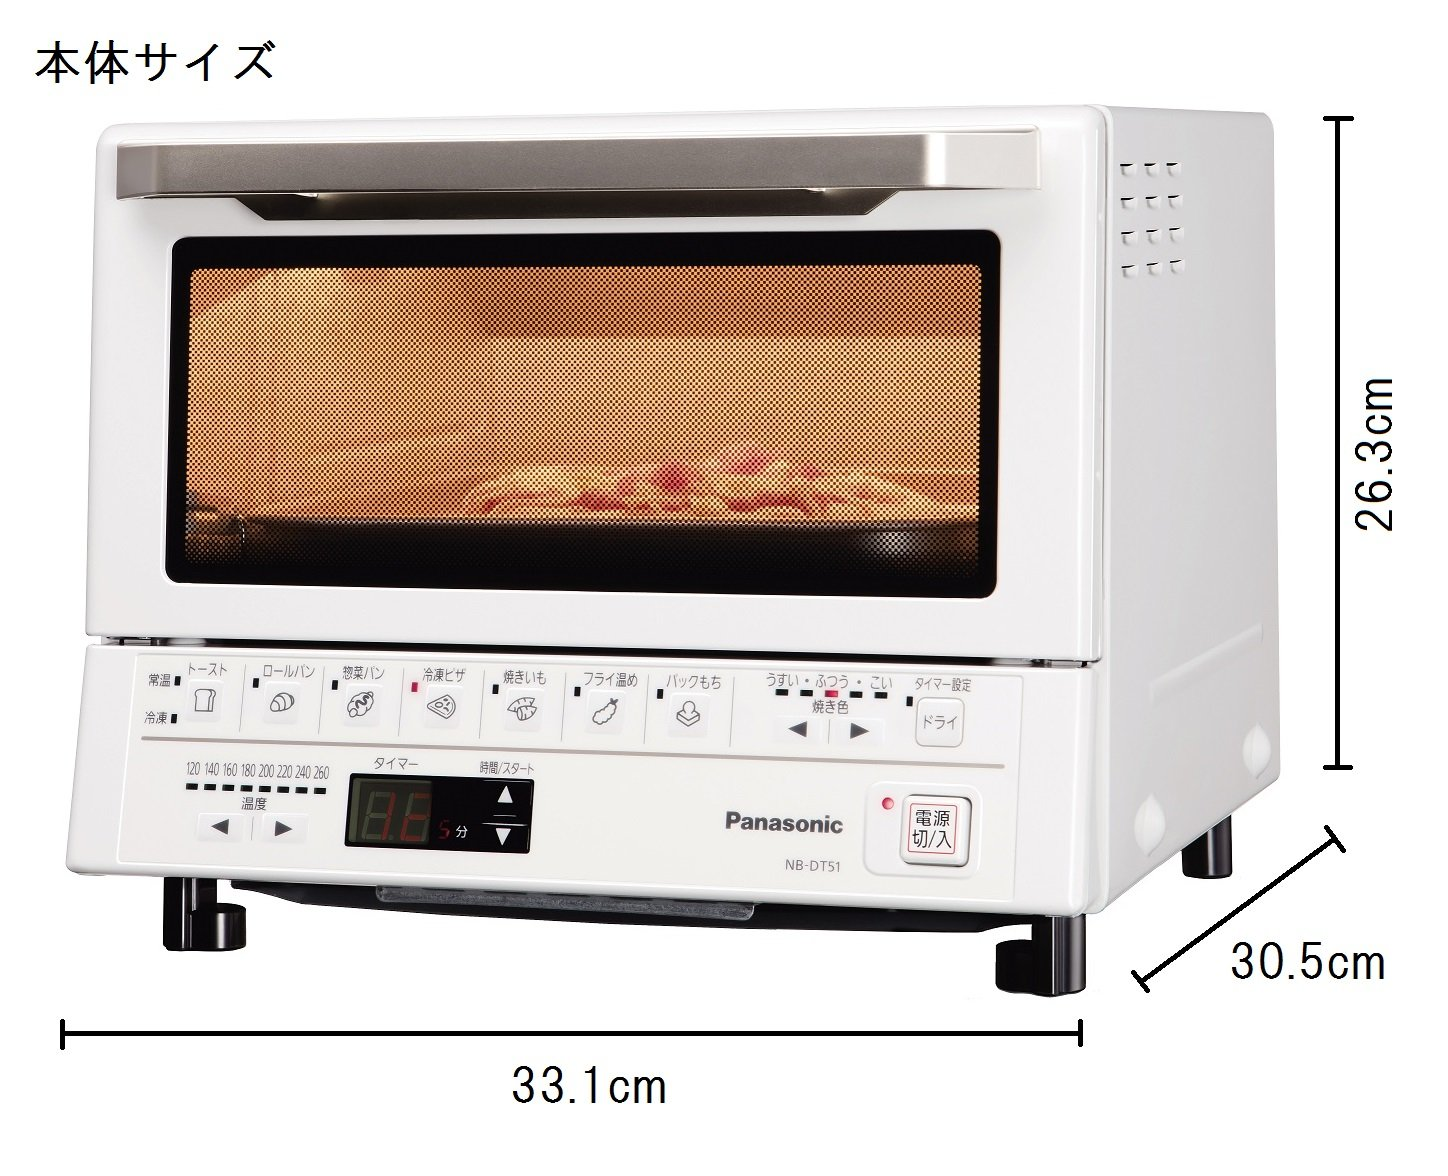 Panasonic Compact oven NB-DT51-W (White